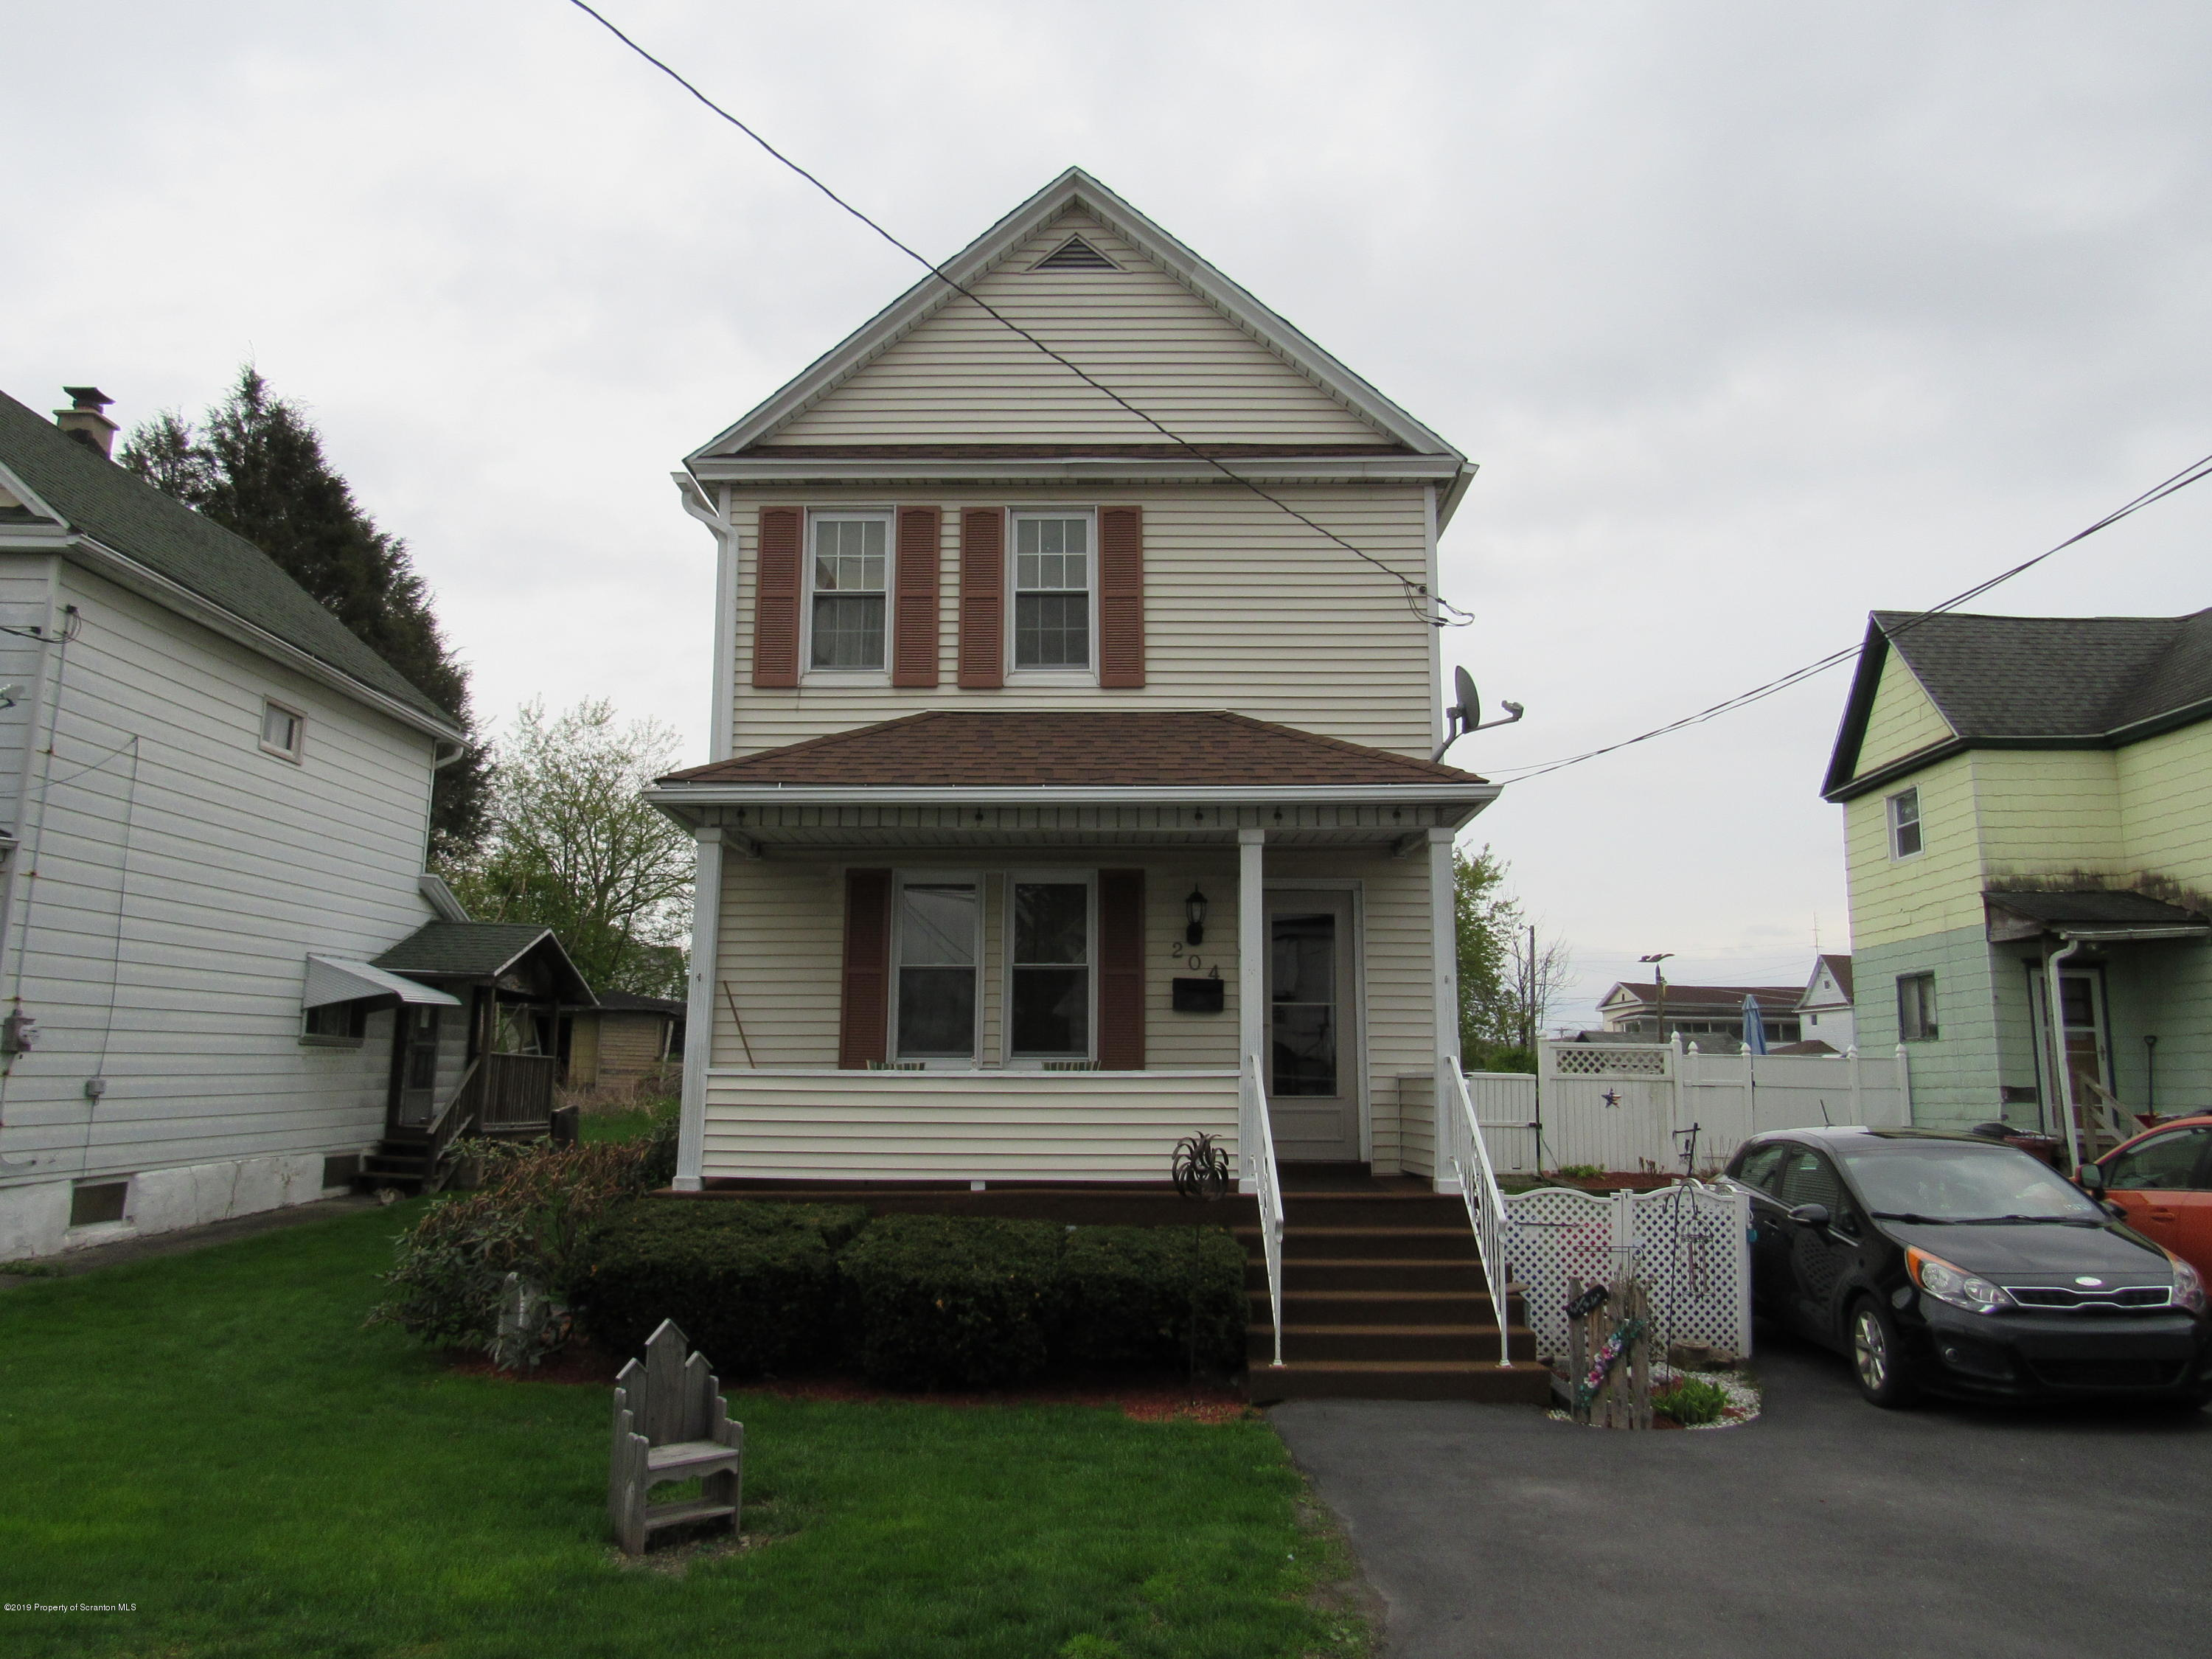 204 Gibbons St, Dunmore, Pennsylvania 18512, 1 Bedroom Bedrooms, 5 Rooms Rooms,2 BathroomsBathrooms,Single Family,For Sale,Gibbons,19-1906